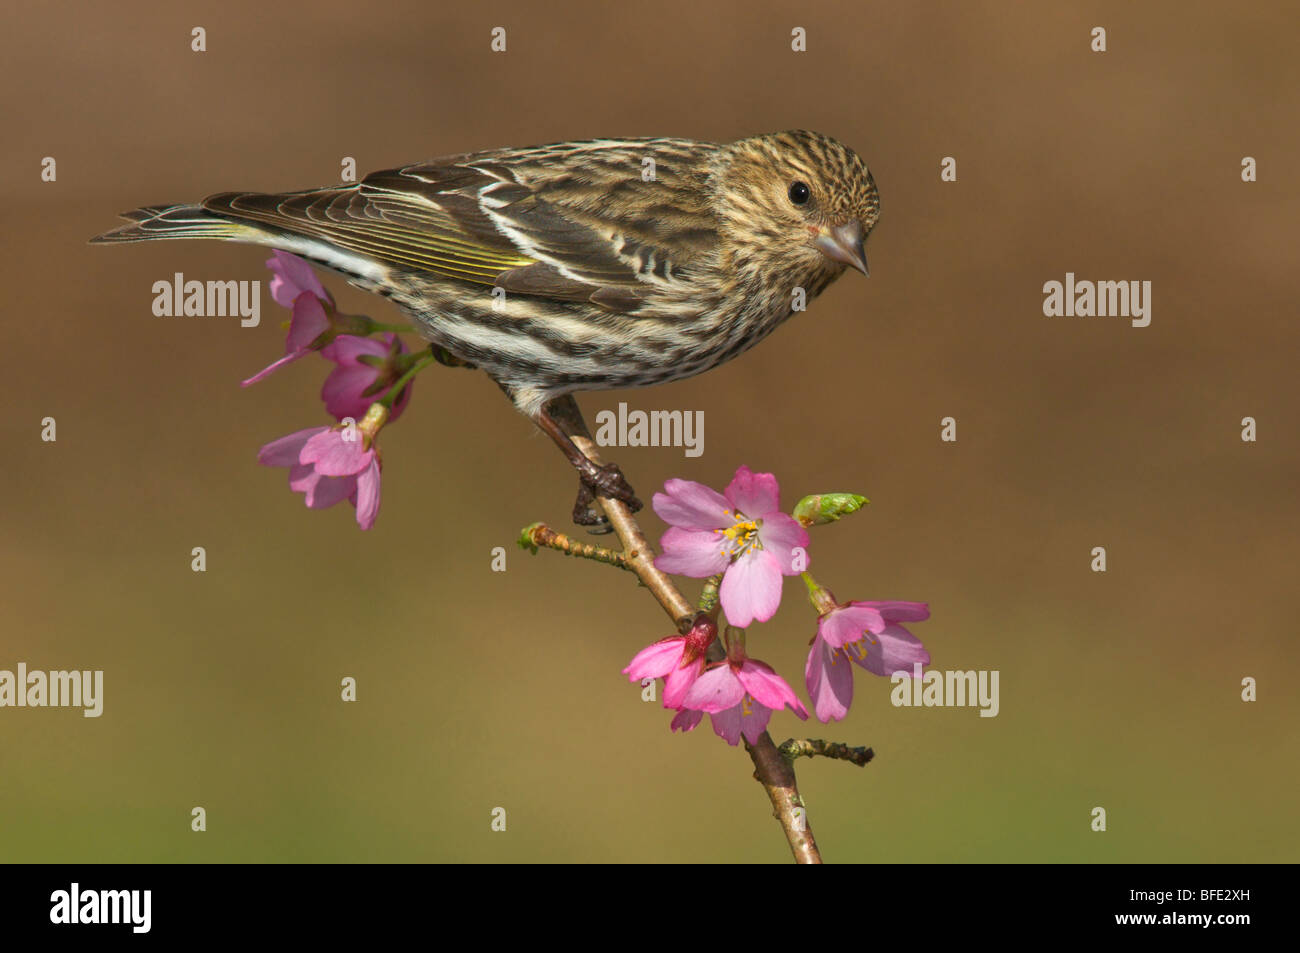 Pine siskin (Carduelis pinus) perched on flowering plum branch in Victoria, Vancouver Island, British Columbia, - Stock Image